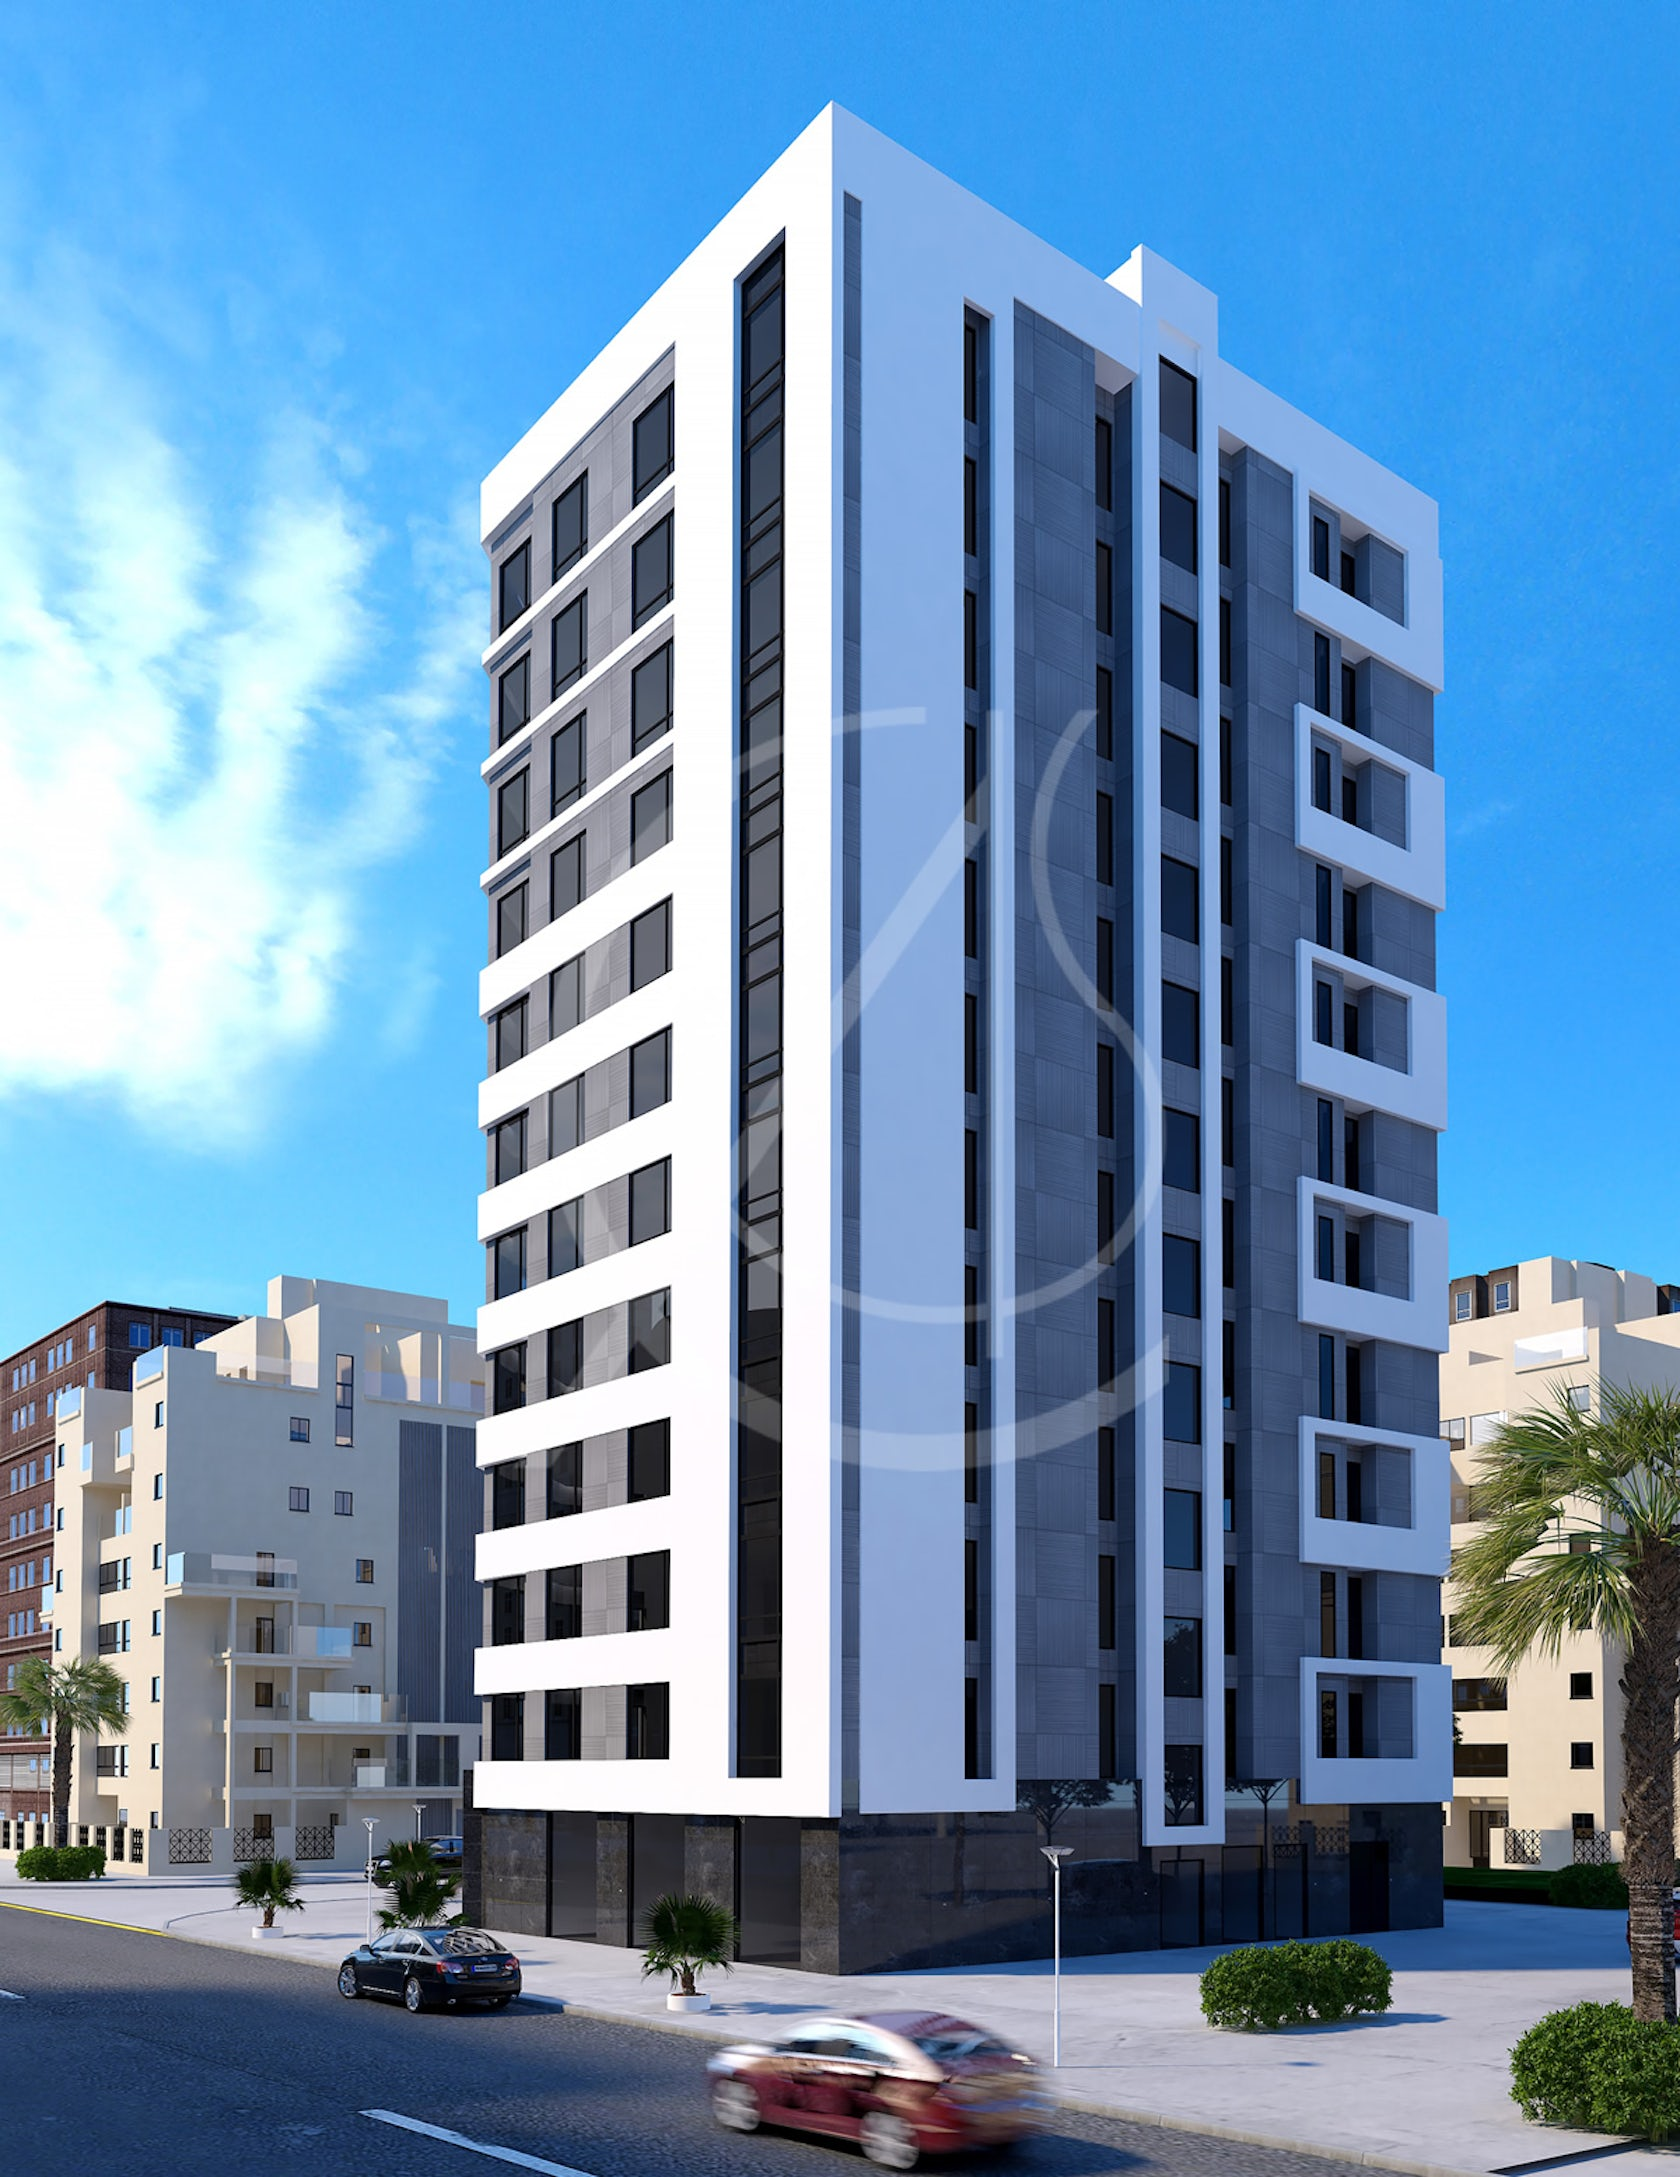 12 Story Modern Apartment Exterior Design By Comelite Architecture Structure And Interior Design Architizer